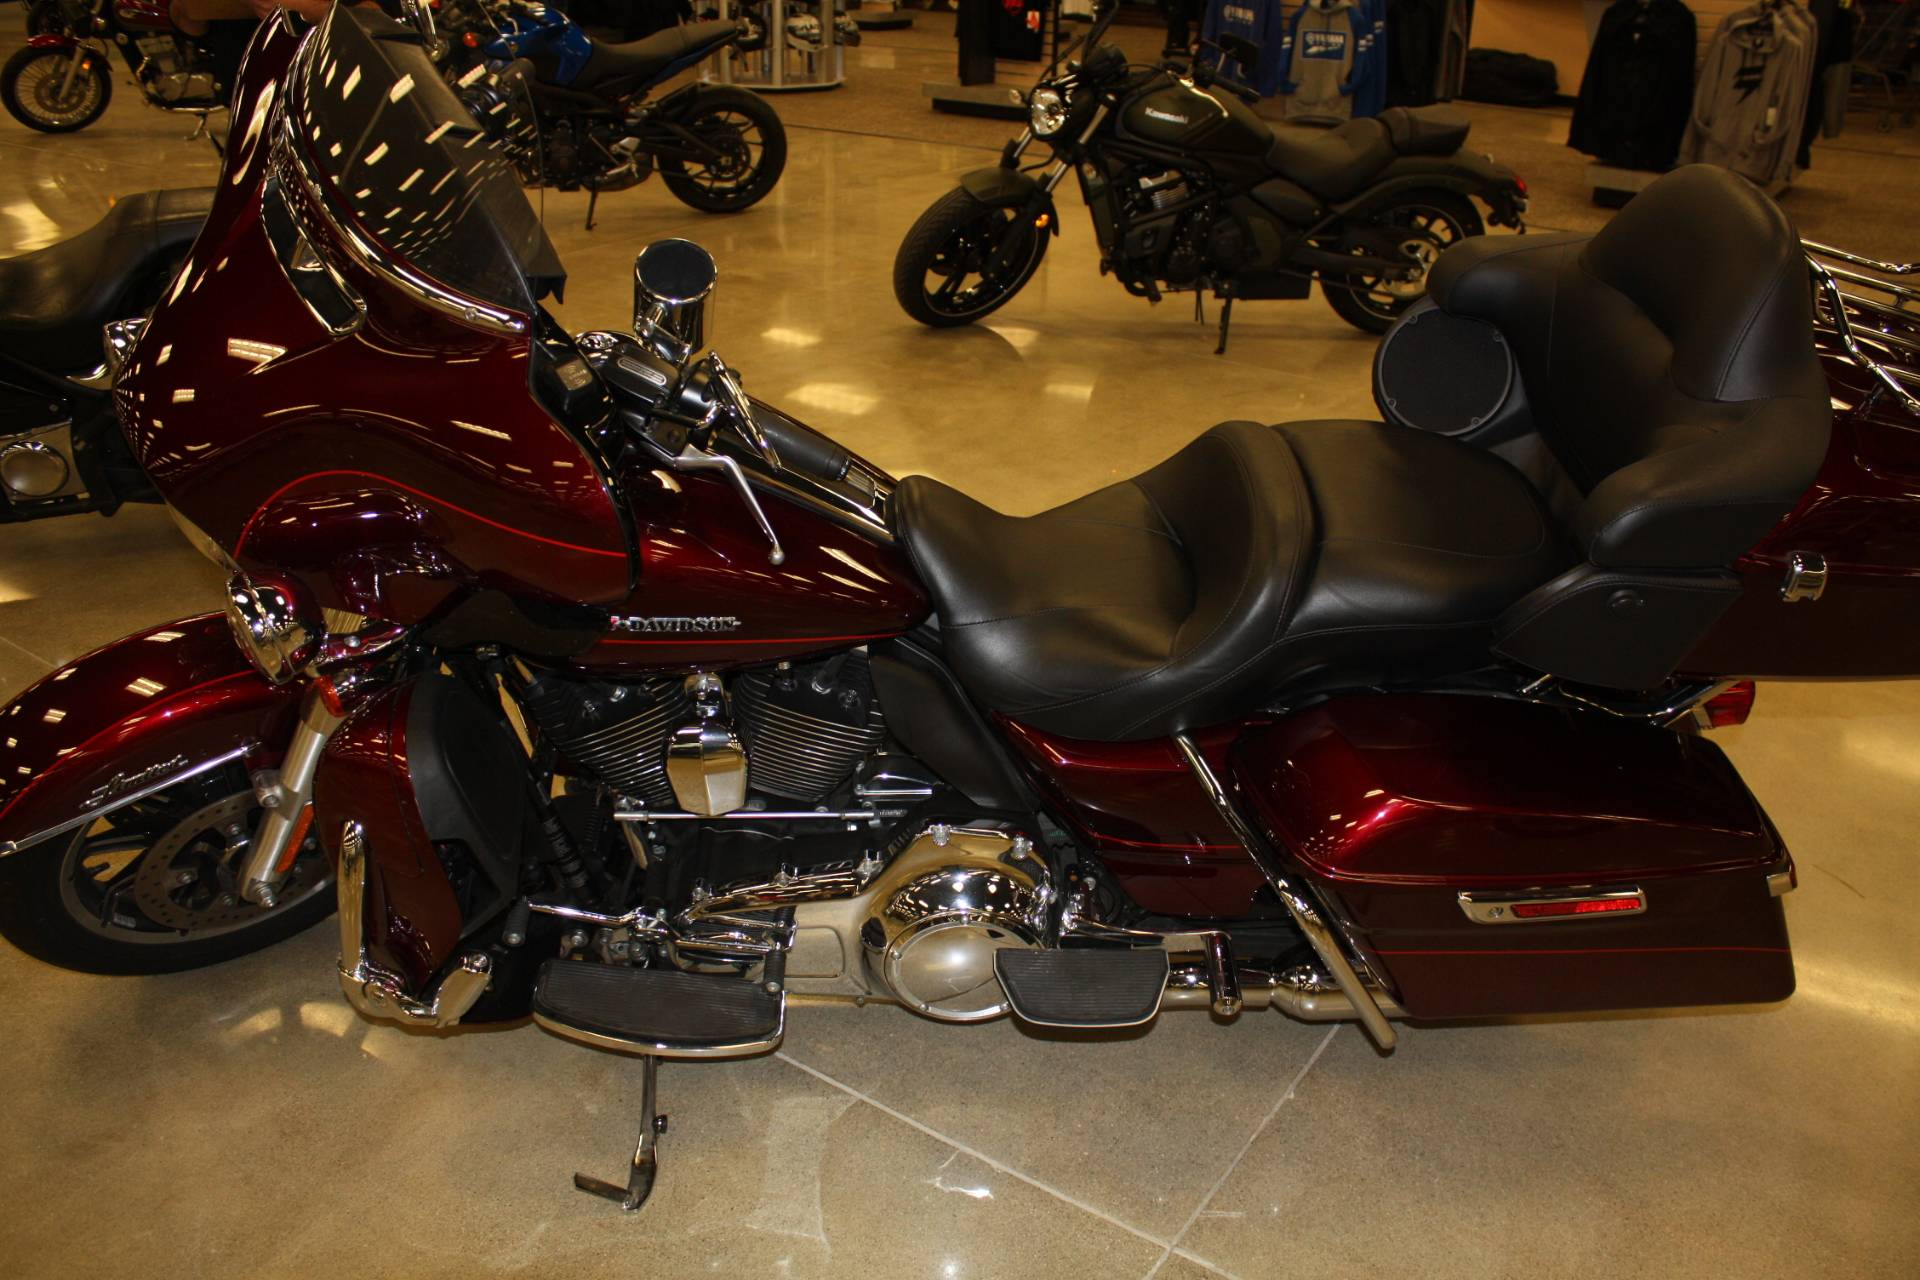 2016 HARLEY DAVIDSON ULTRA LIMITED in Middletown, Ohio - Photo 3